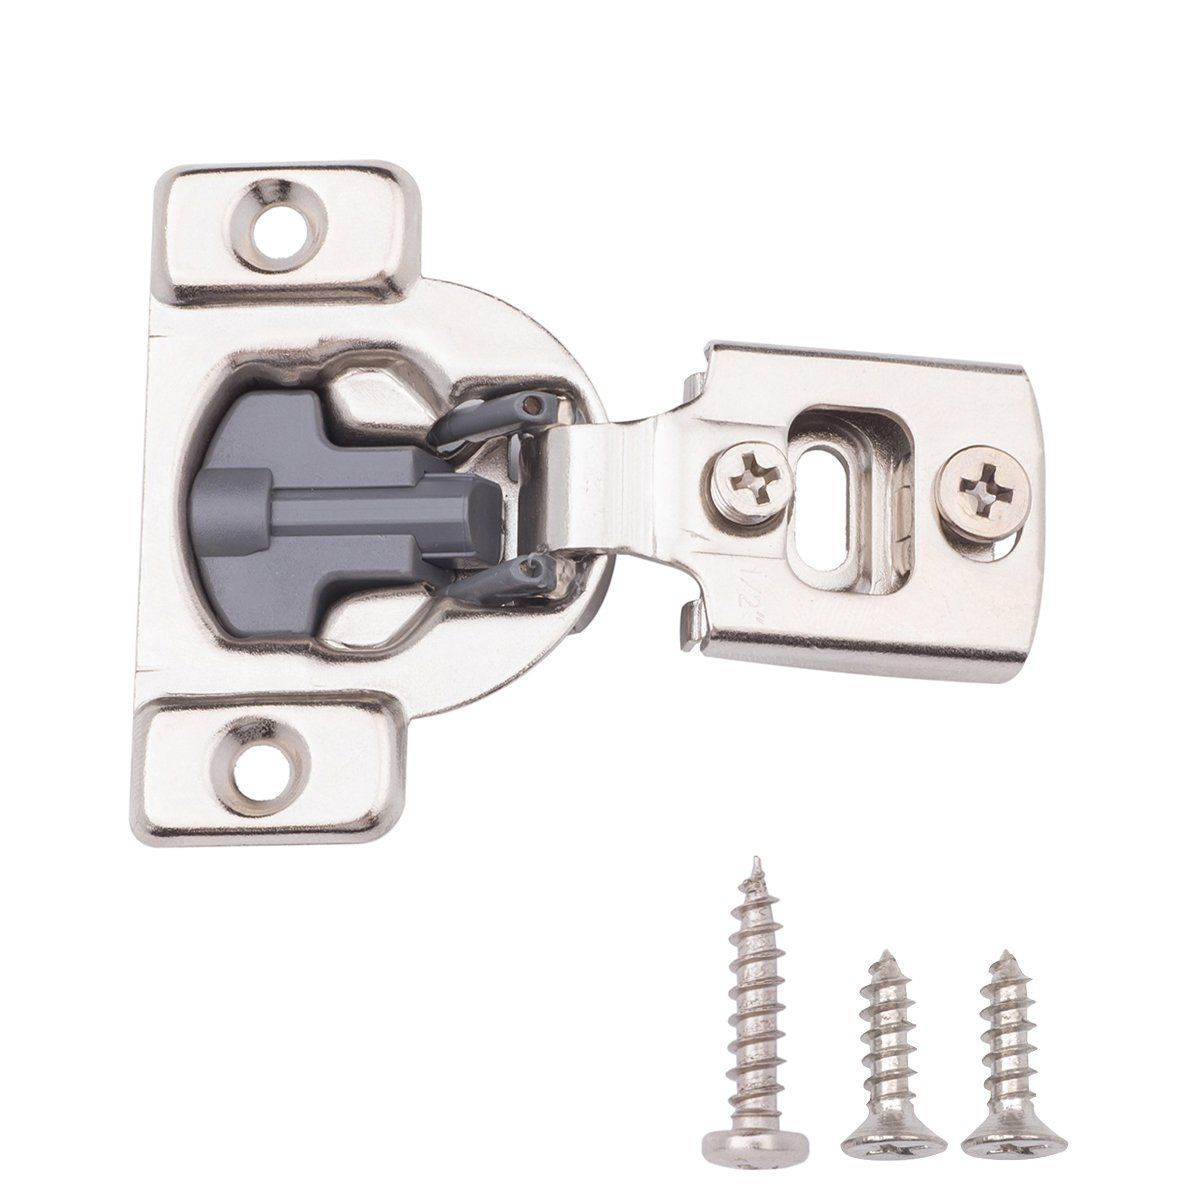 Amazonbasics Soft Close Hinge 1 2 Overlay Nickel Plated 50 Pack Click Image To Review More Details This Is An Aff Overlays Plating Hinges For Cabinets